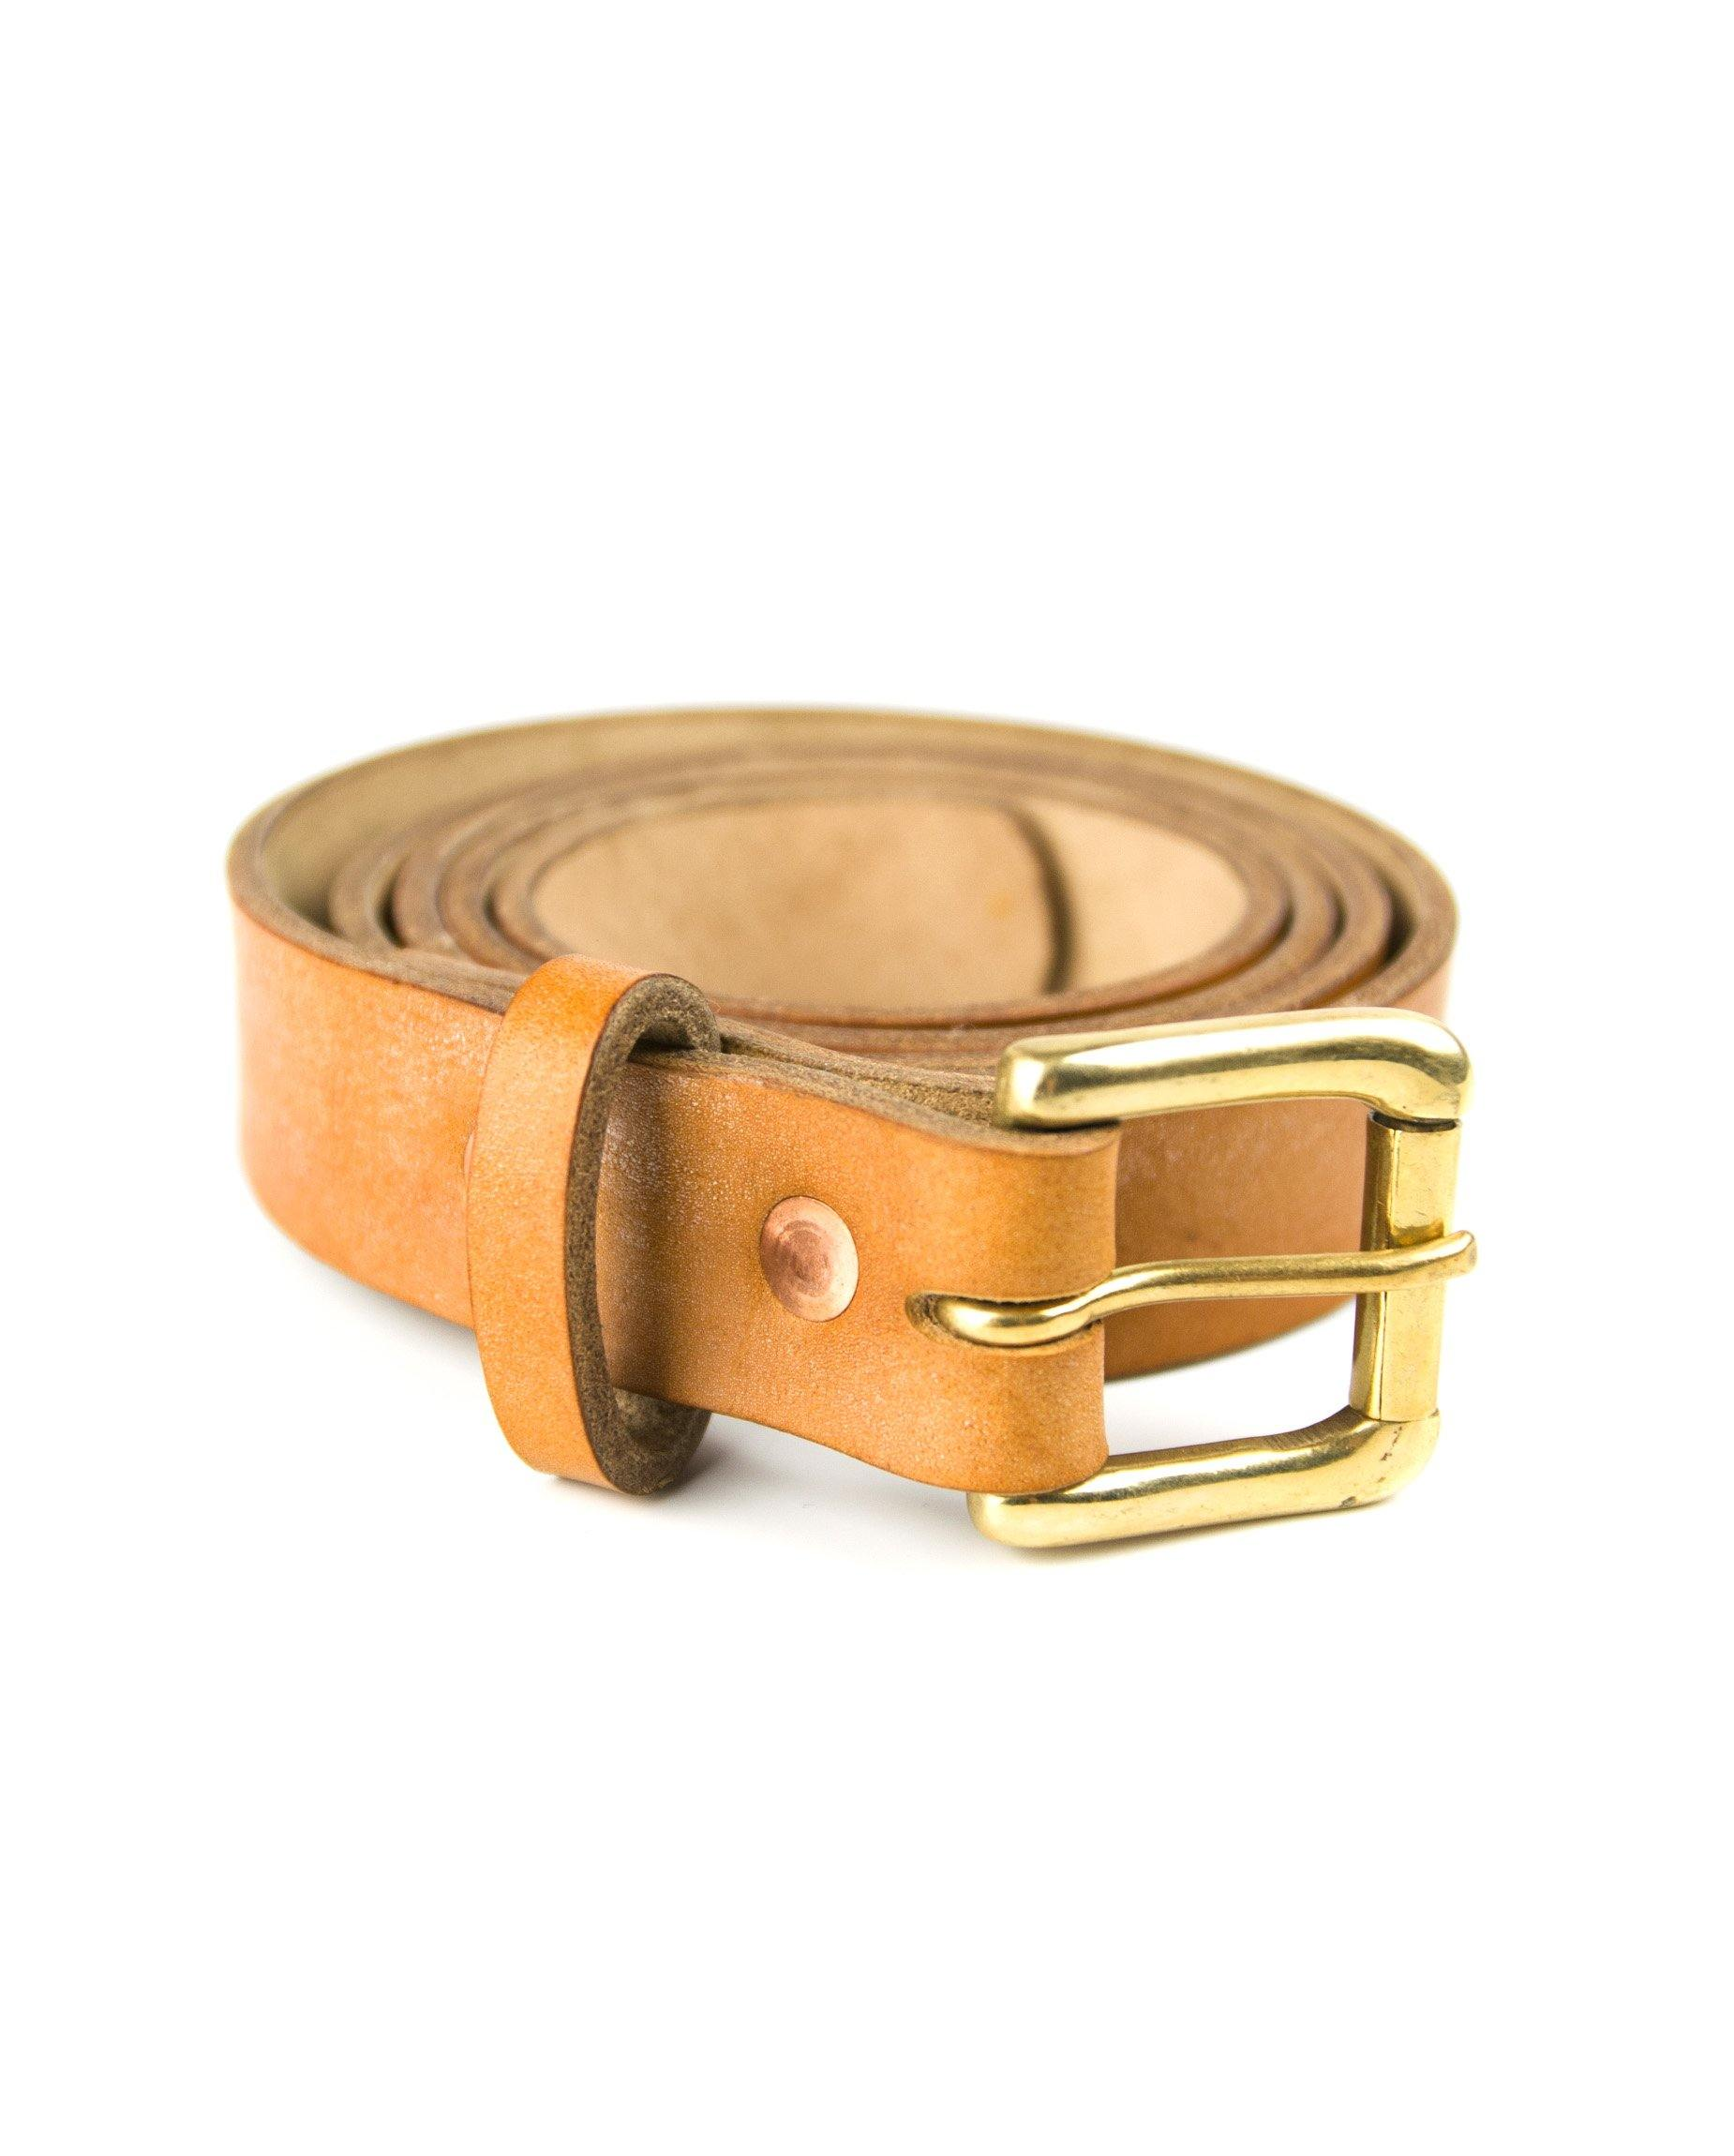 Waterloo Belt - Tan - Debonair